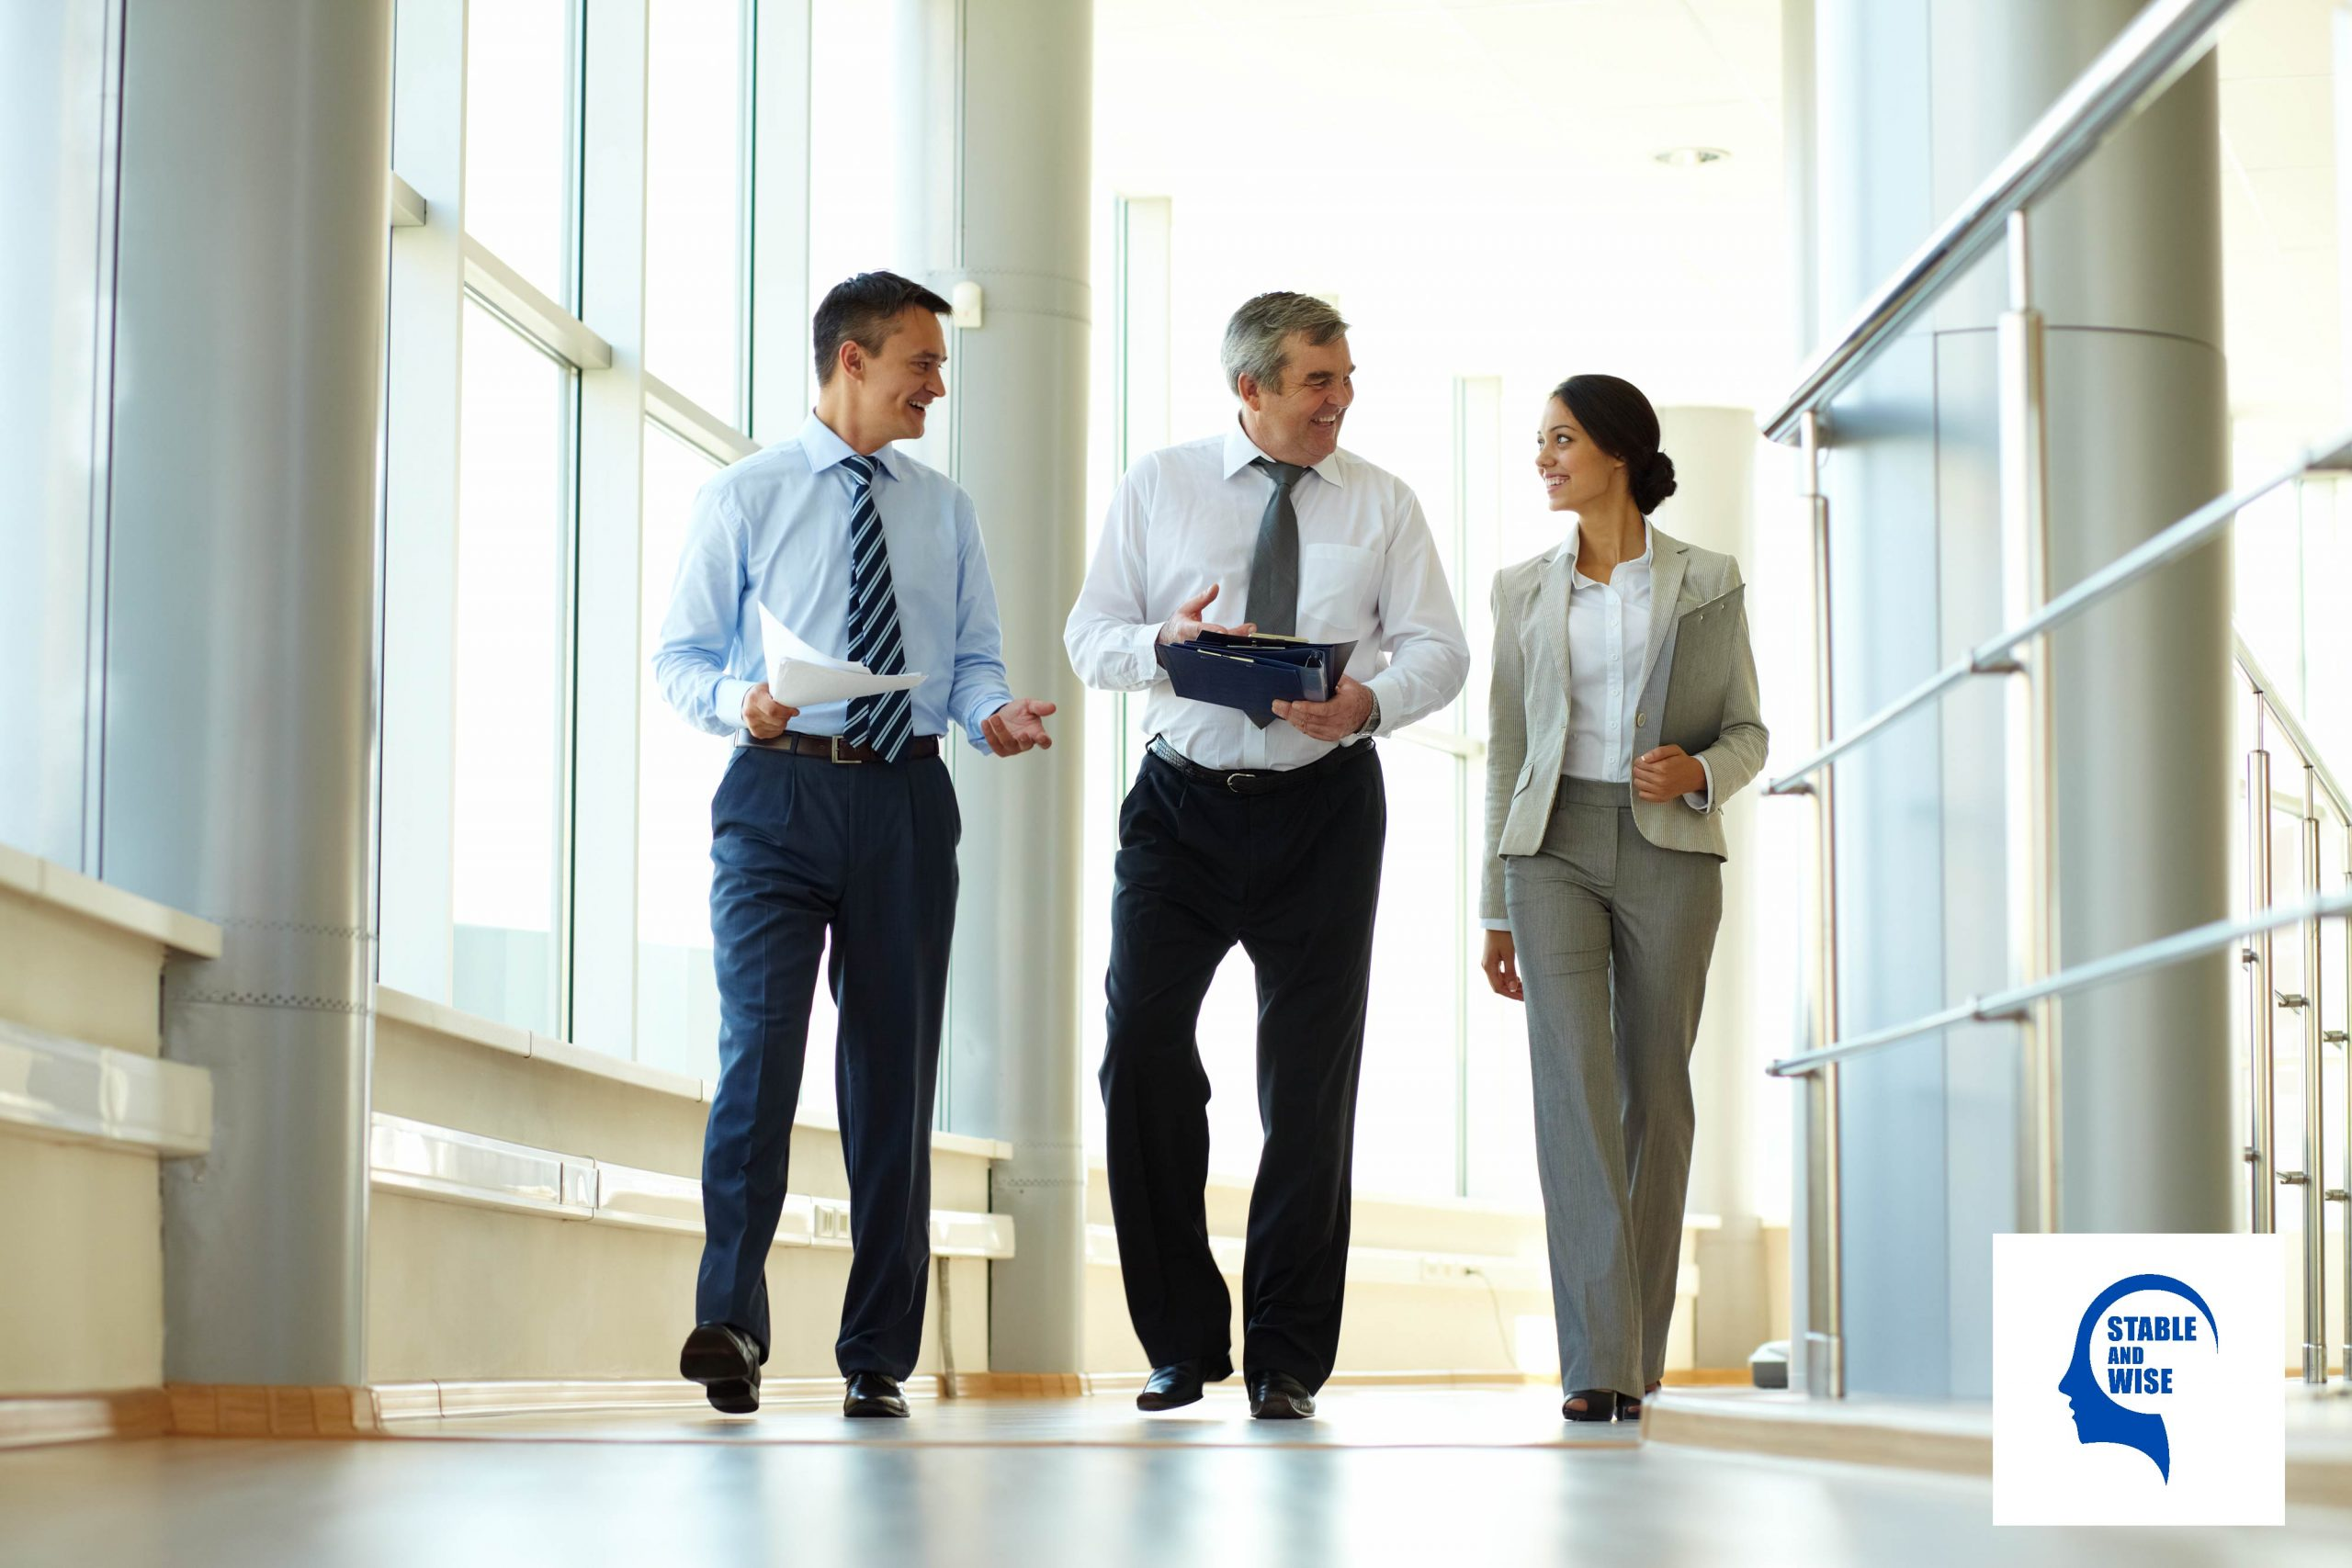 Networking: Mature aged workers networking with each other